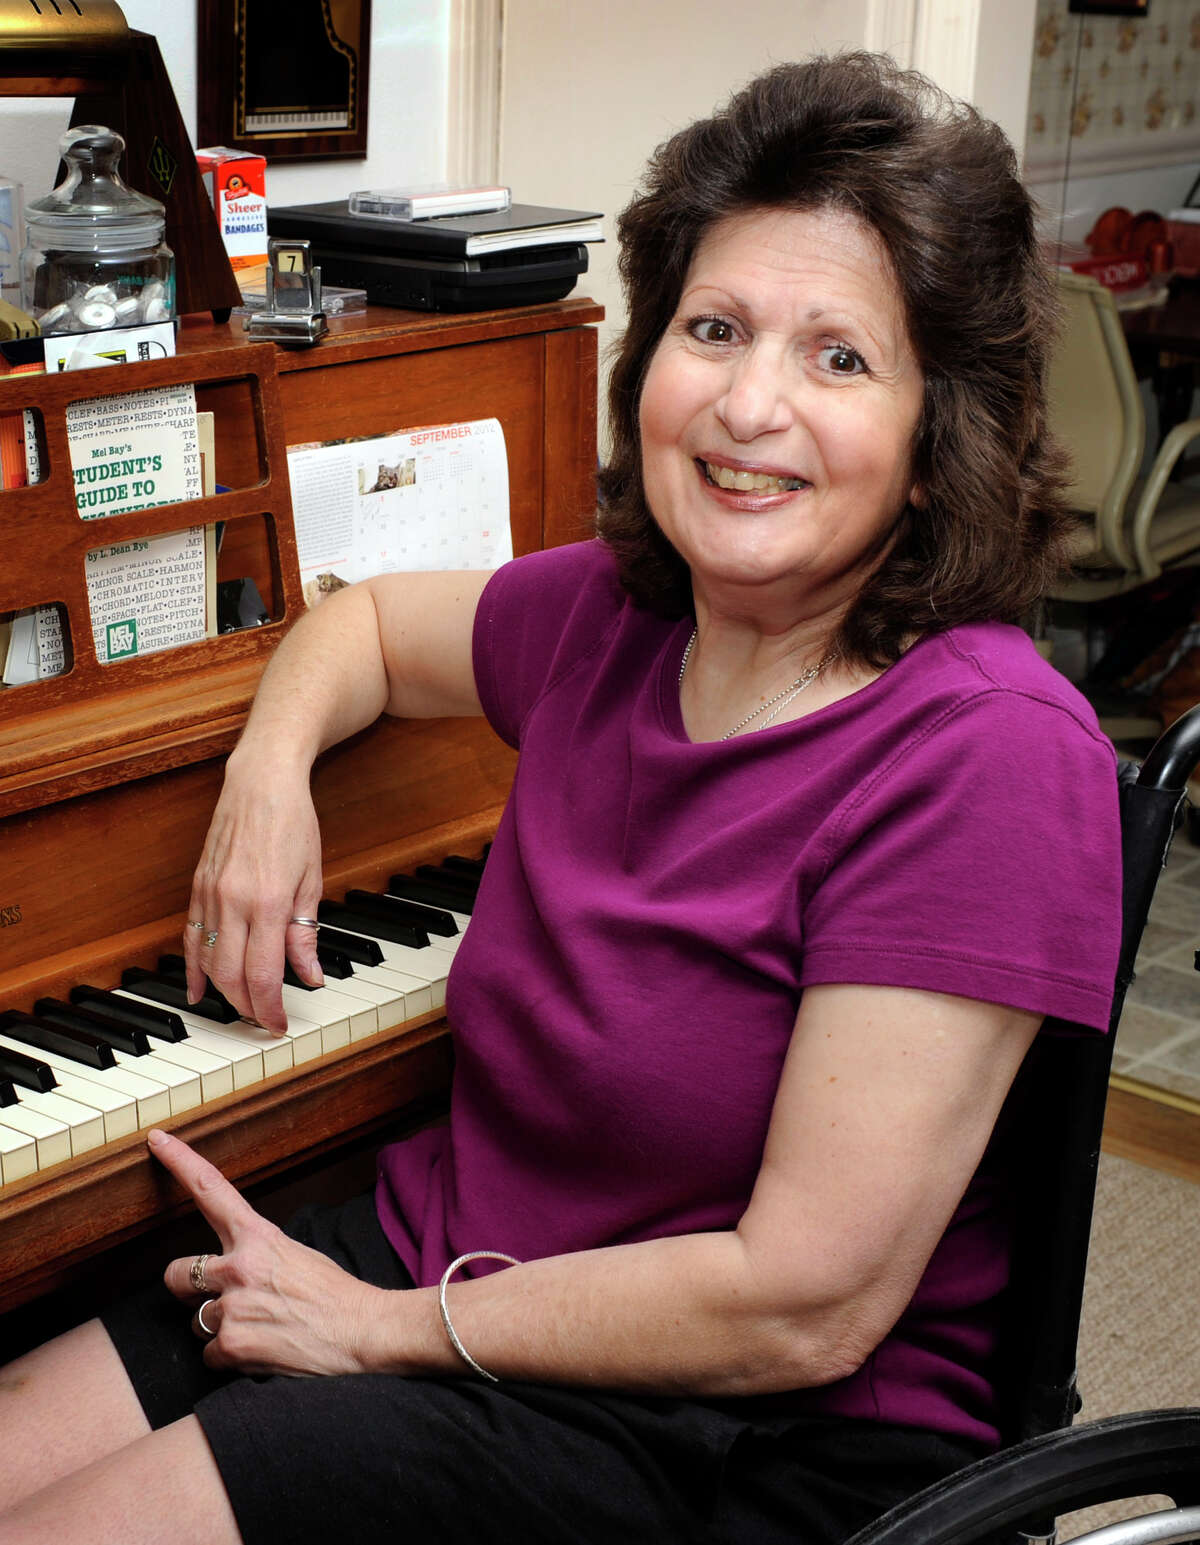 Piano teacher Bonnie Peterson, 57, sits at her piano at home in Brookfield, Friday, Sept. 7, 2012.